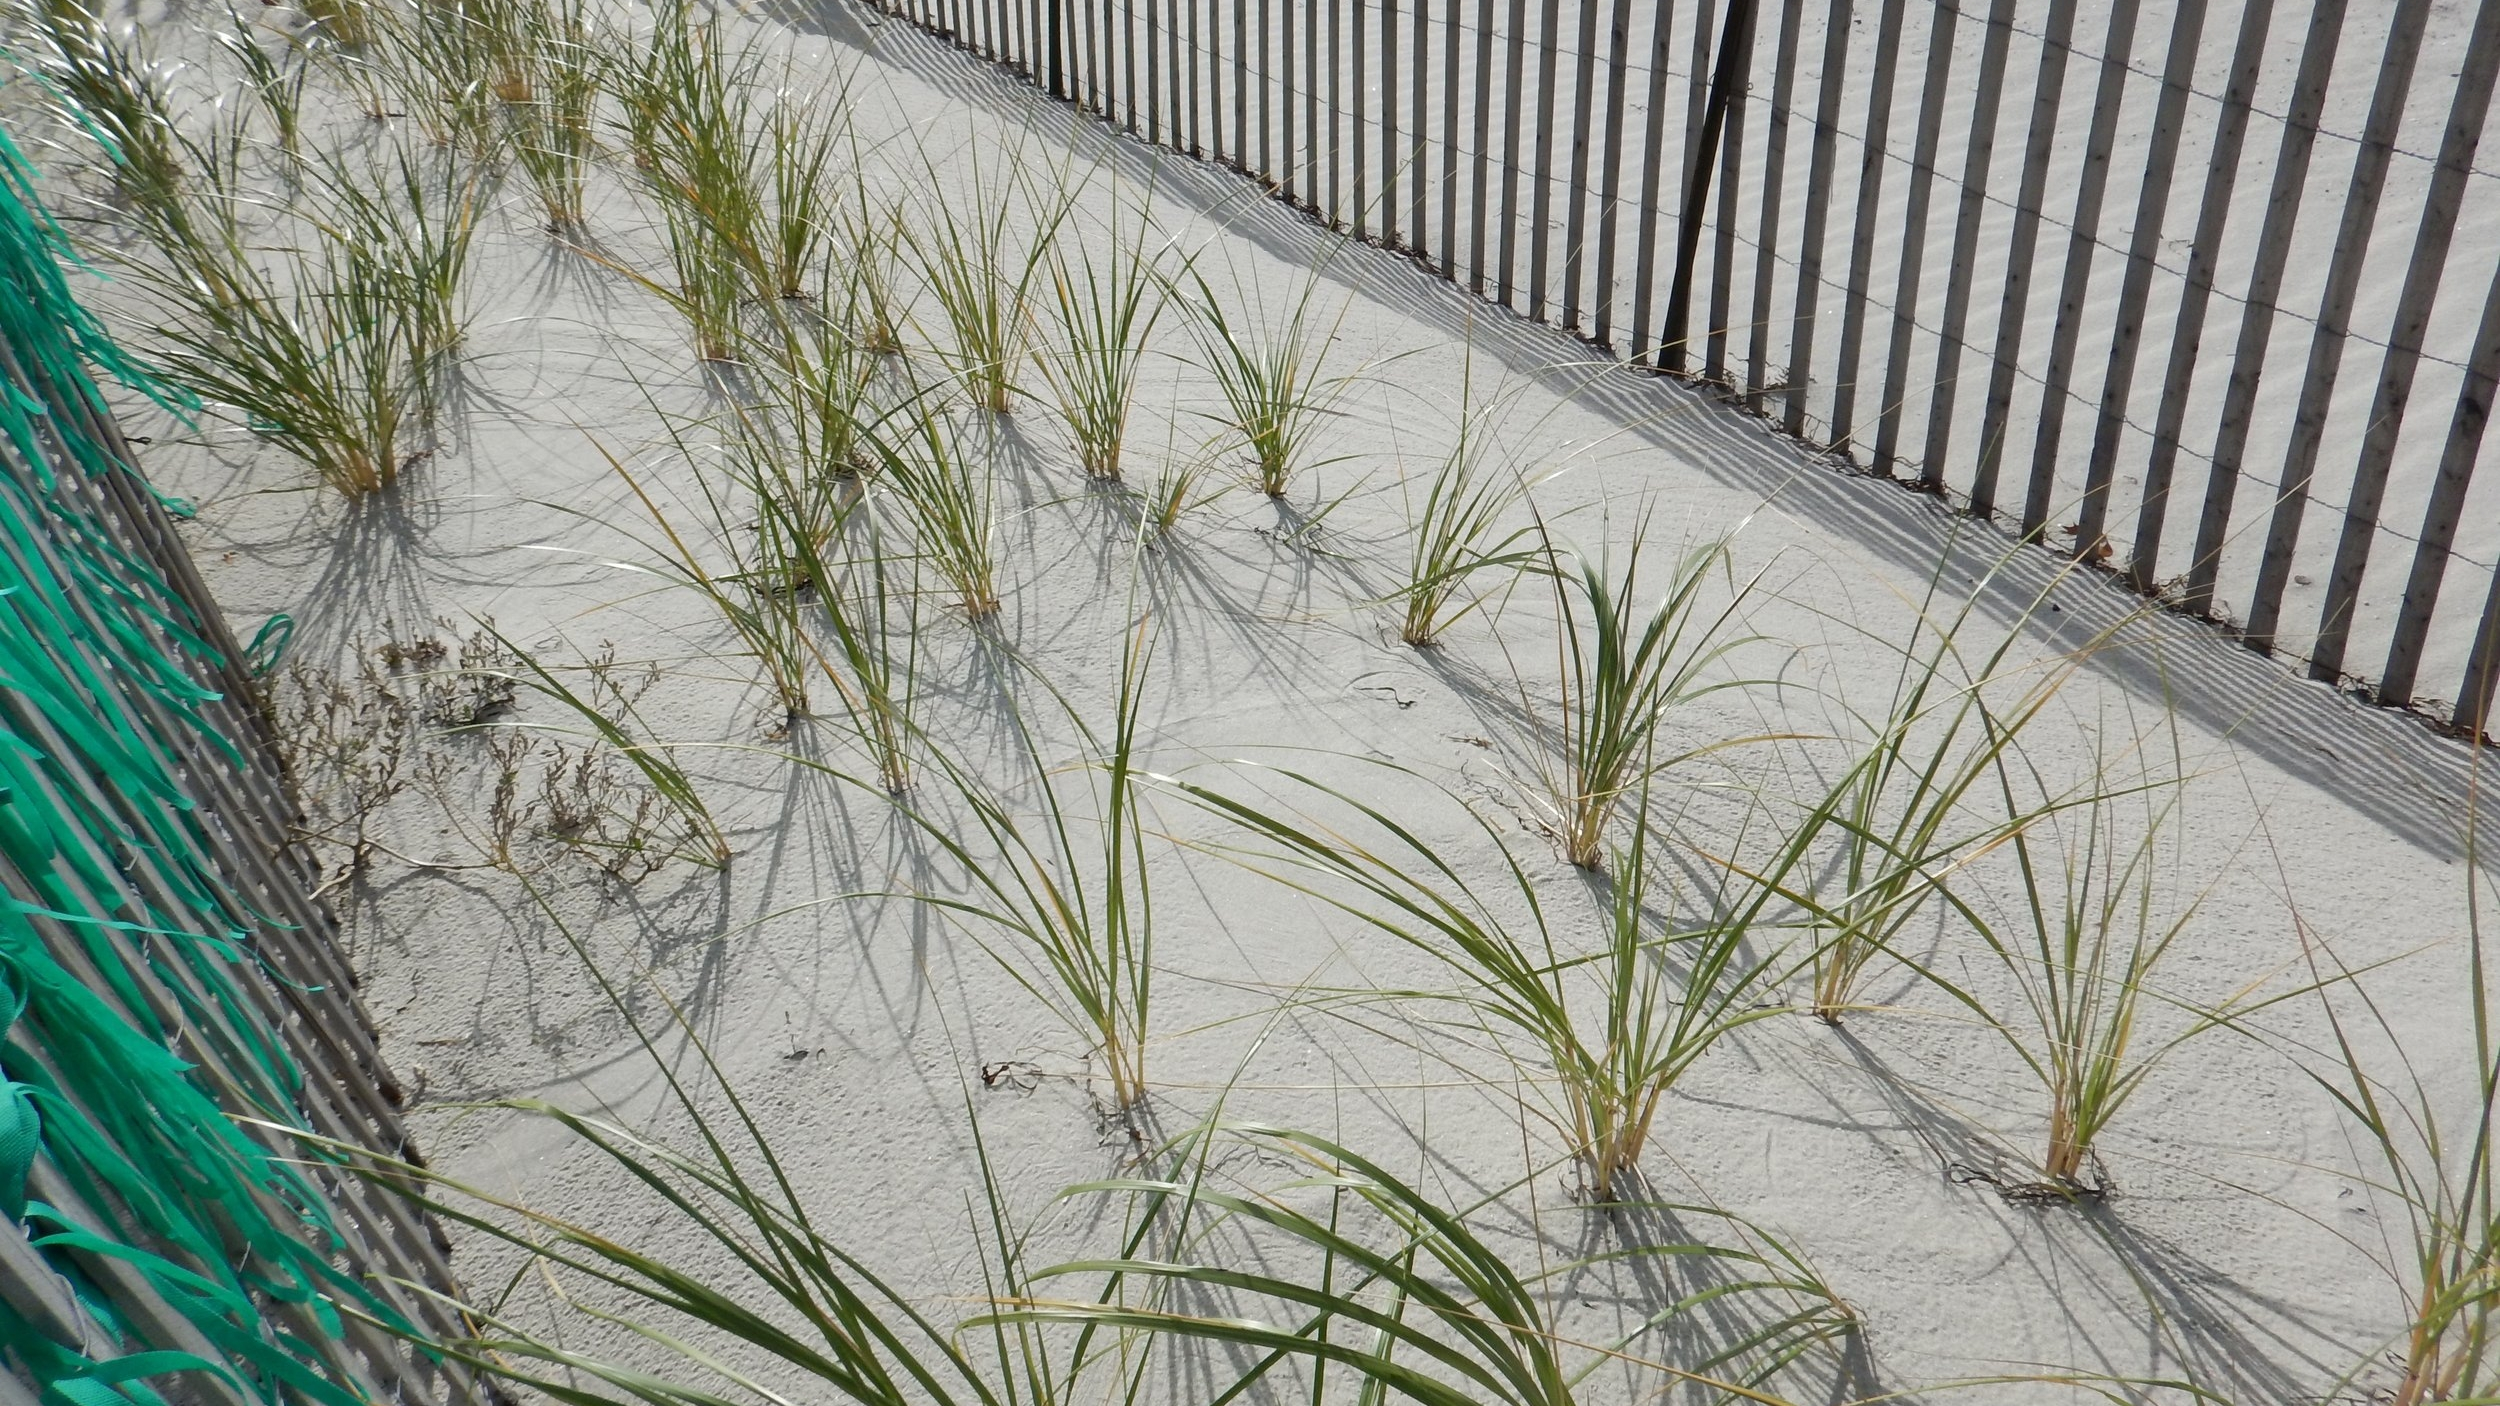 Dune building, this grass will provide additional erosion control as it continues to grow along the project area.